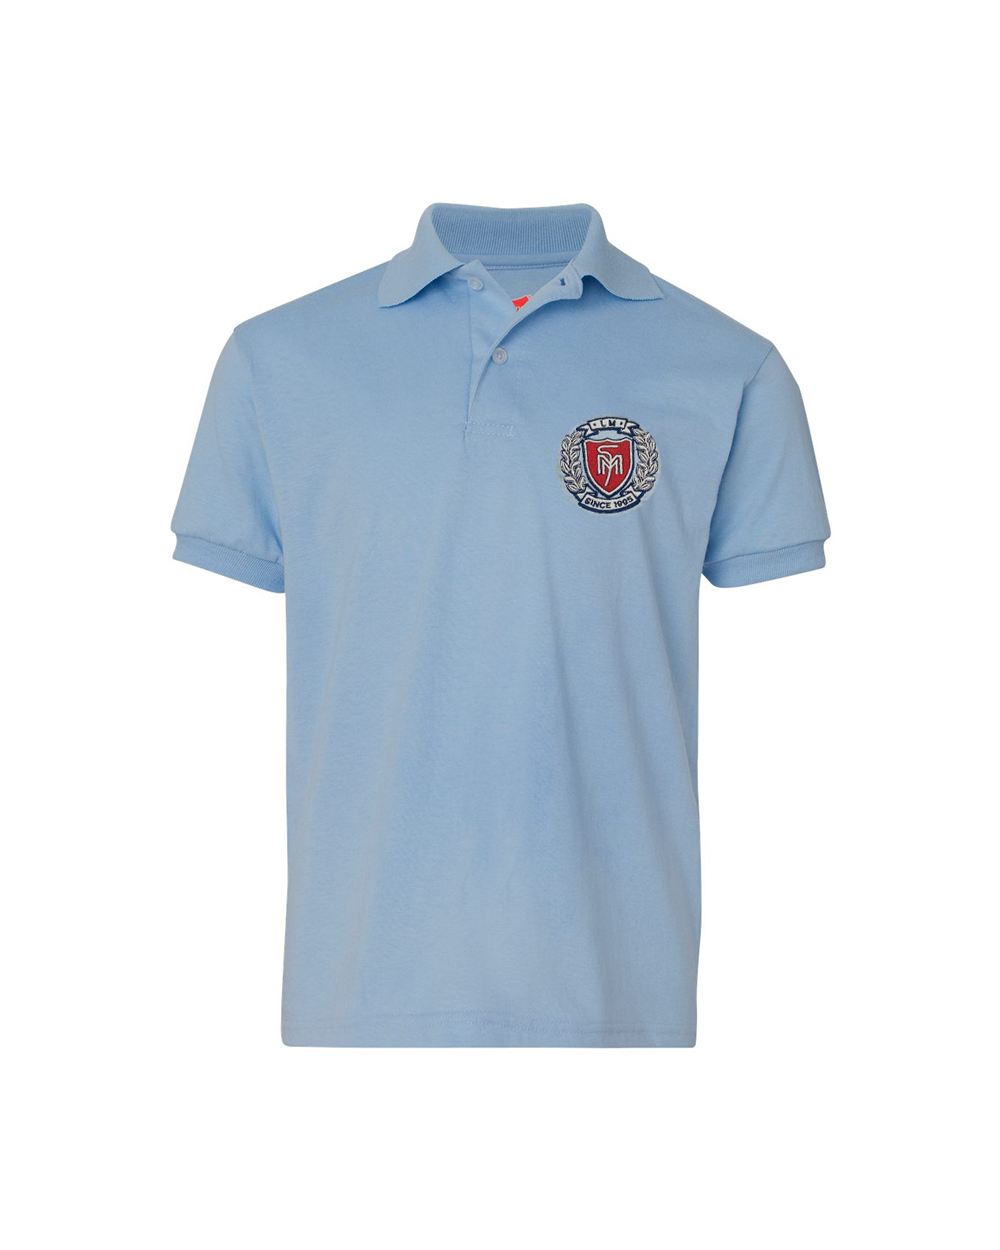 Youth Ecosmart® Jersey Polo Embroidered- #PY054YLB, Minimum 30